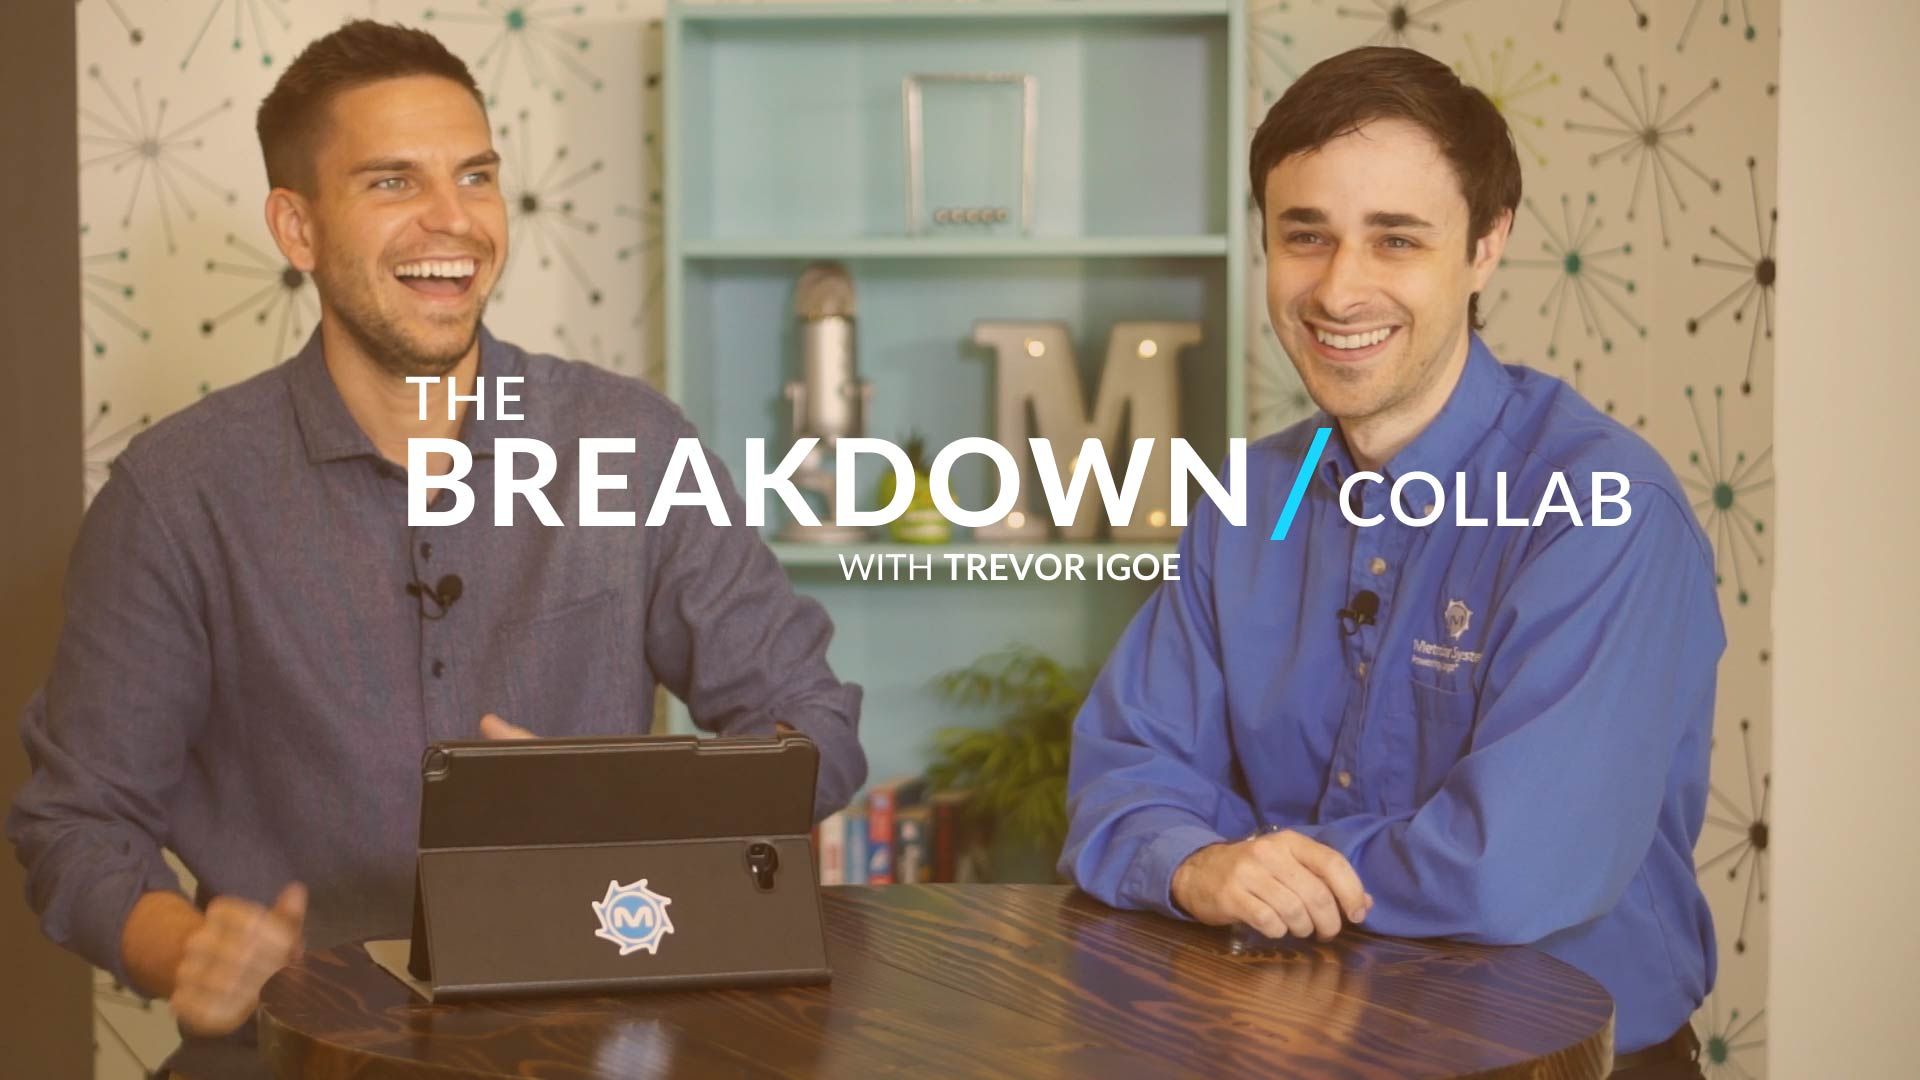 The Breakdown: Collaboration and Technology in the Enterprise